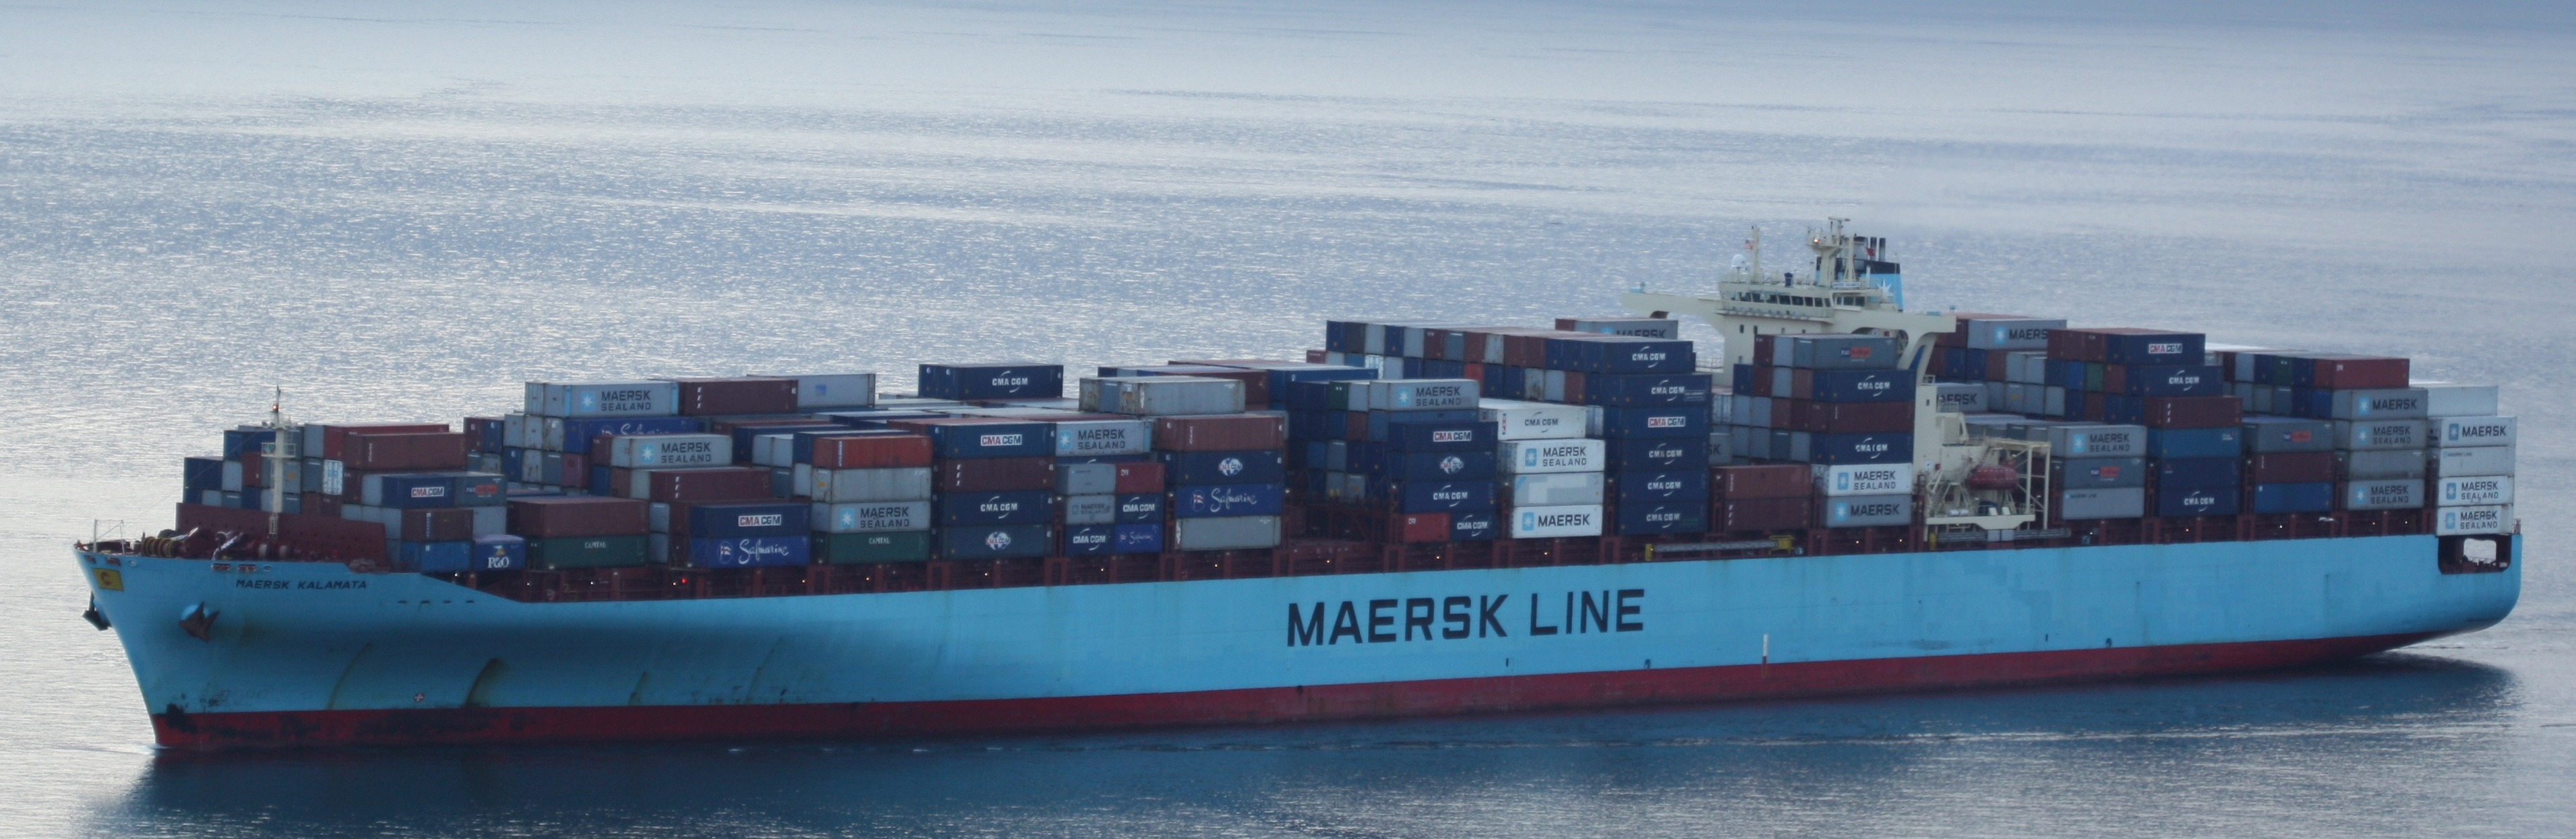 maersk wikipedia the free encyclopedia maersk line detention invoice